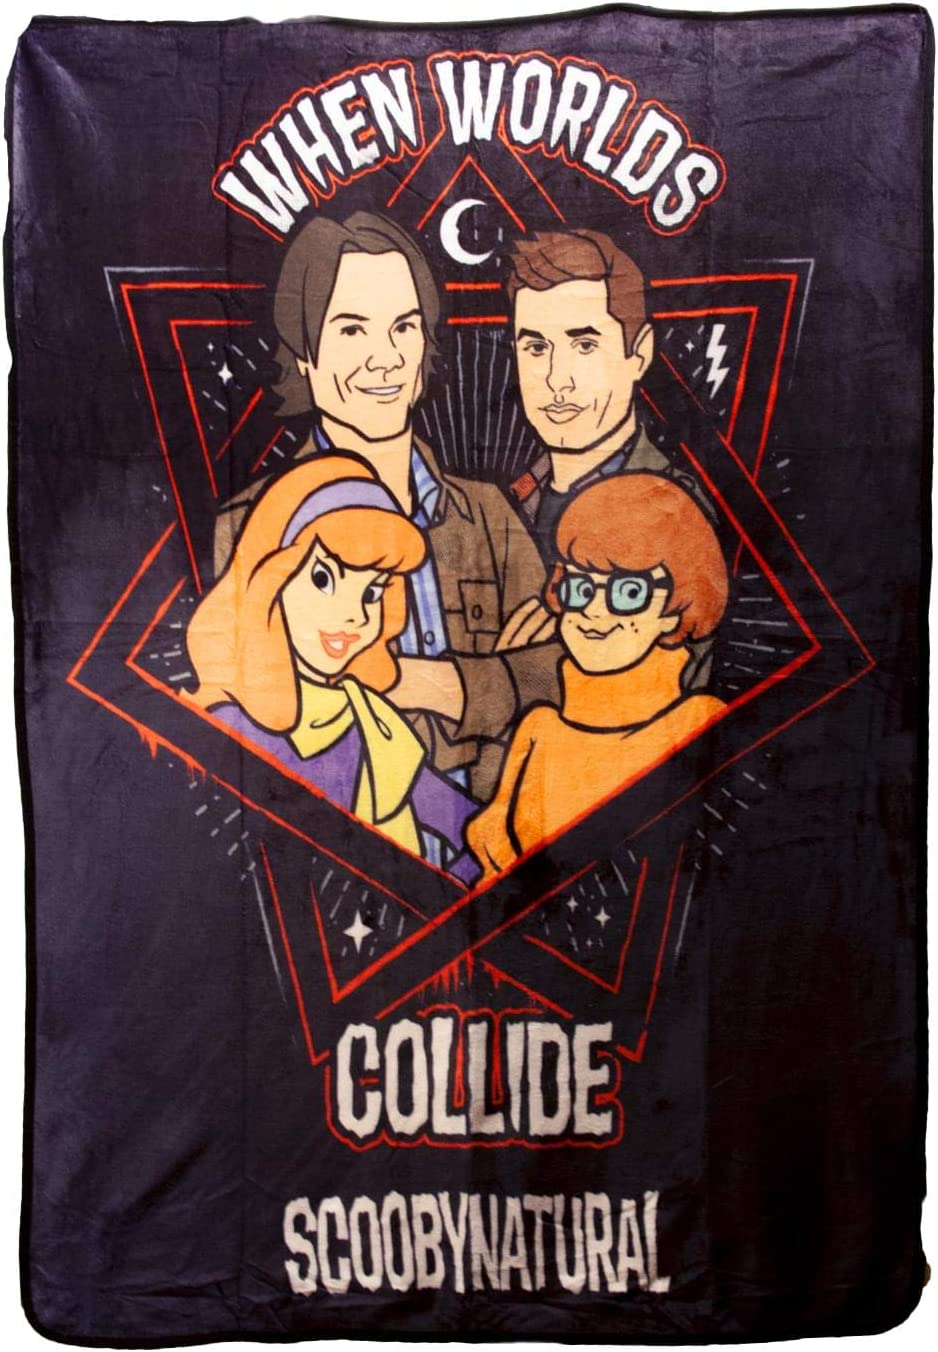 Supernatural Collectibles Scooby Multi-Character Fleece Blanket